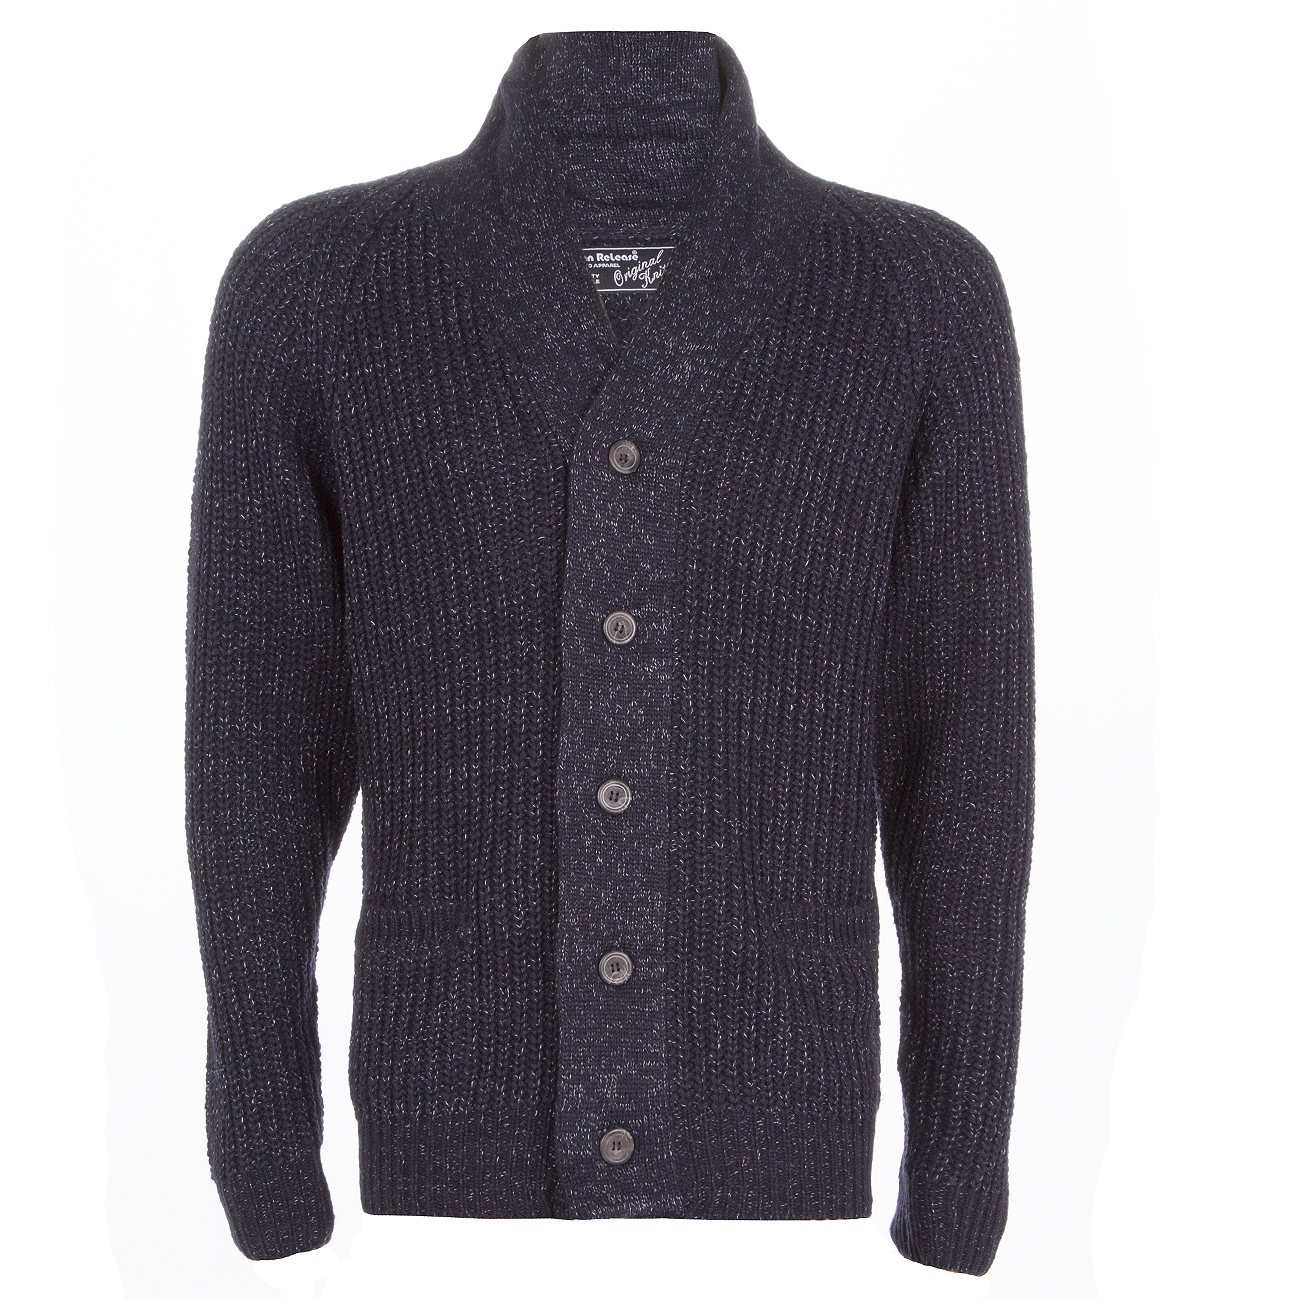 Homme-Tricot-Cardigan-boutonne-col-chale-Pull-Knitwear-Travail-Pull-UK miniature 3